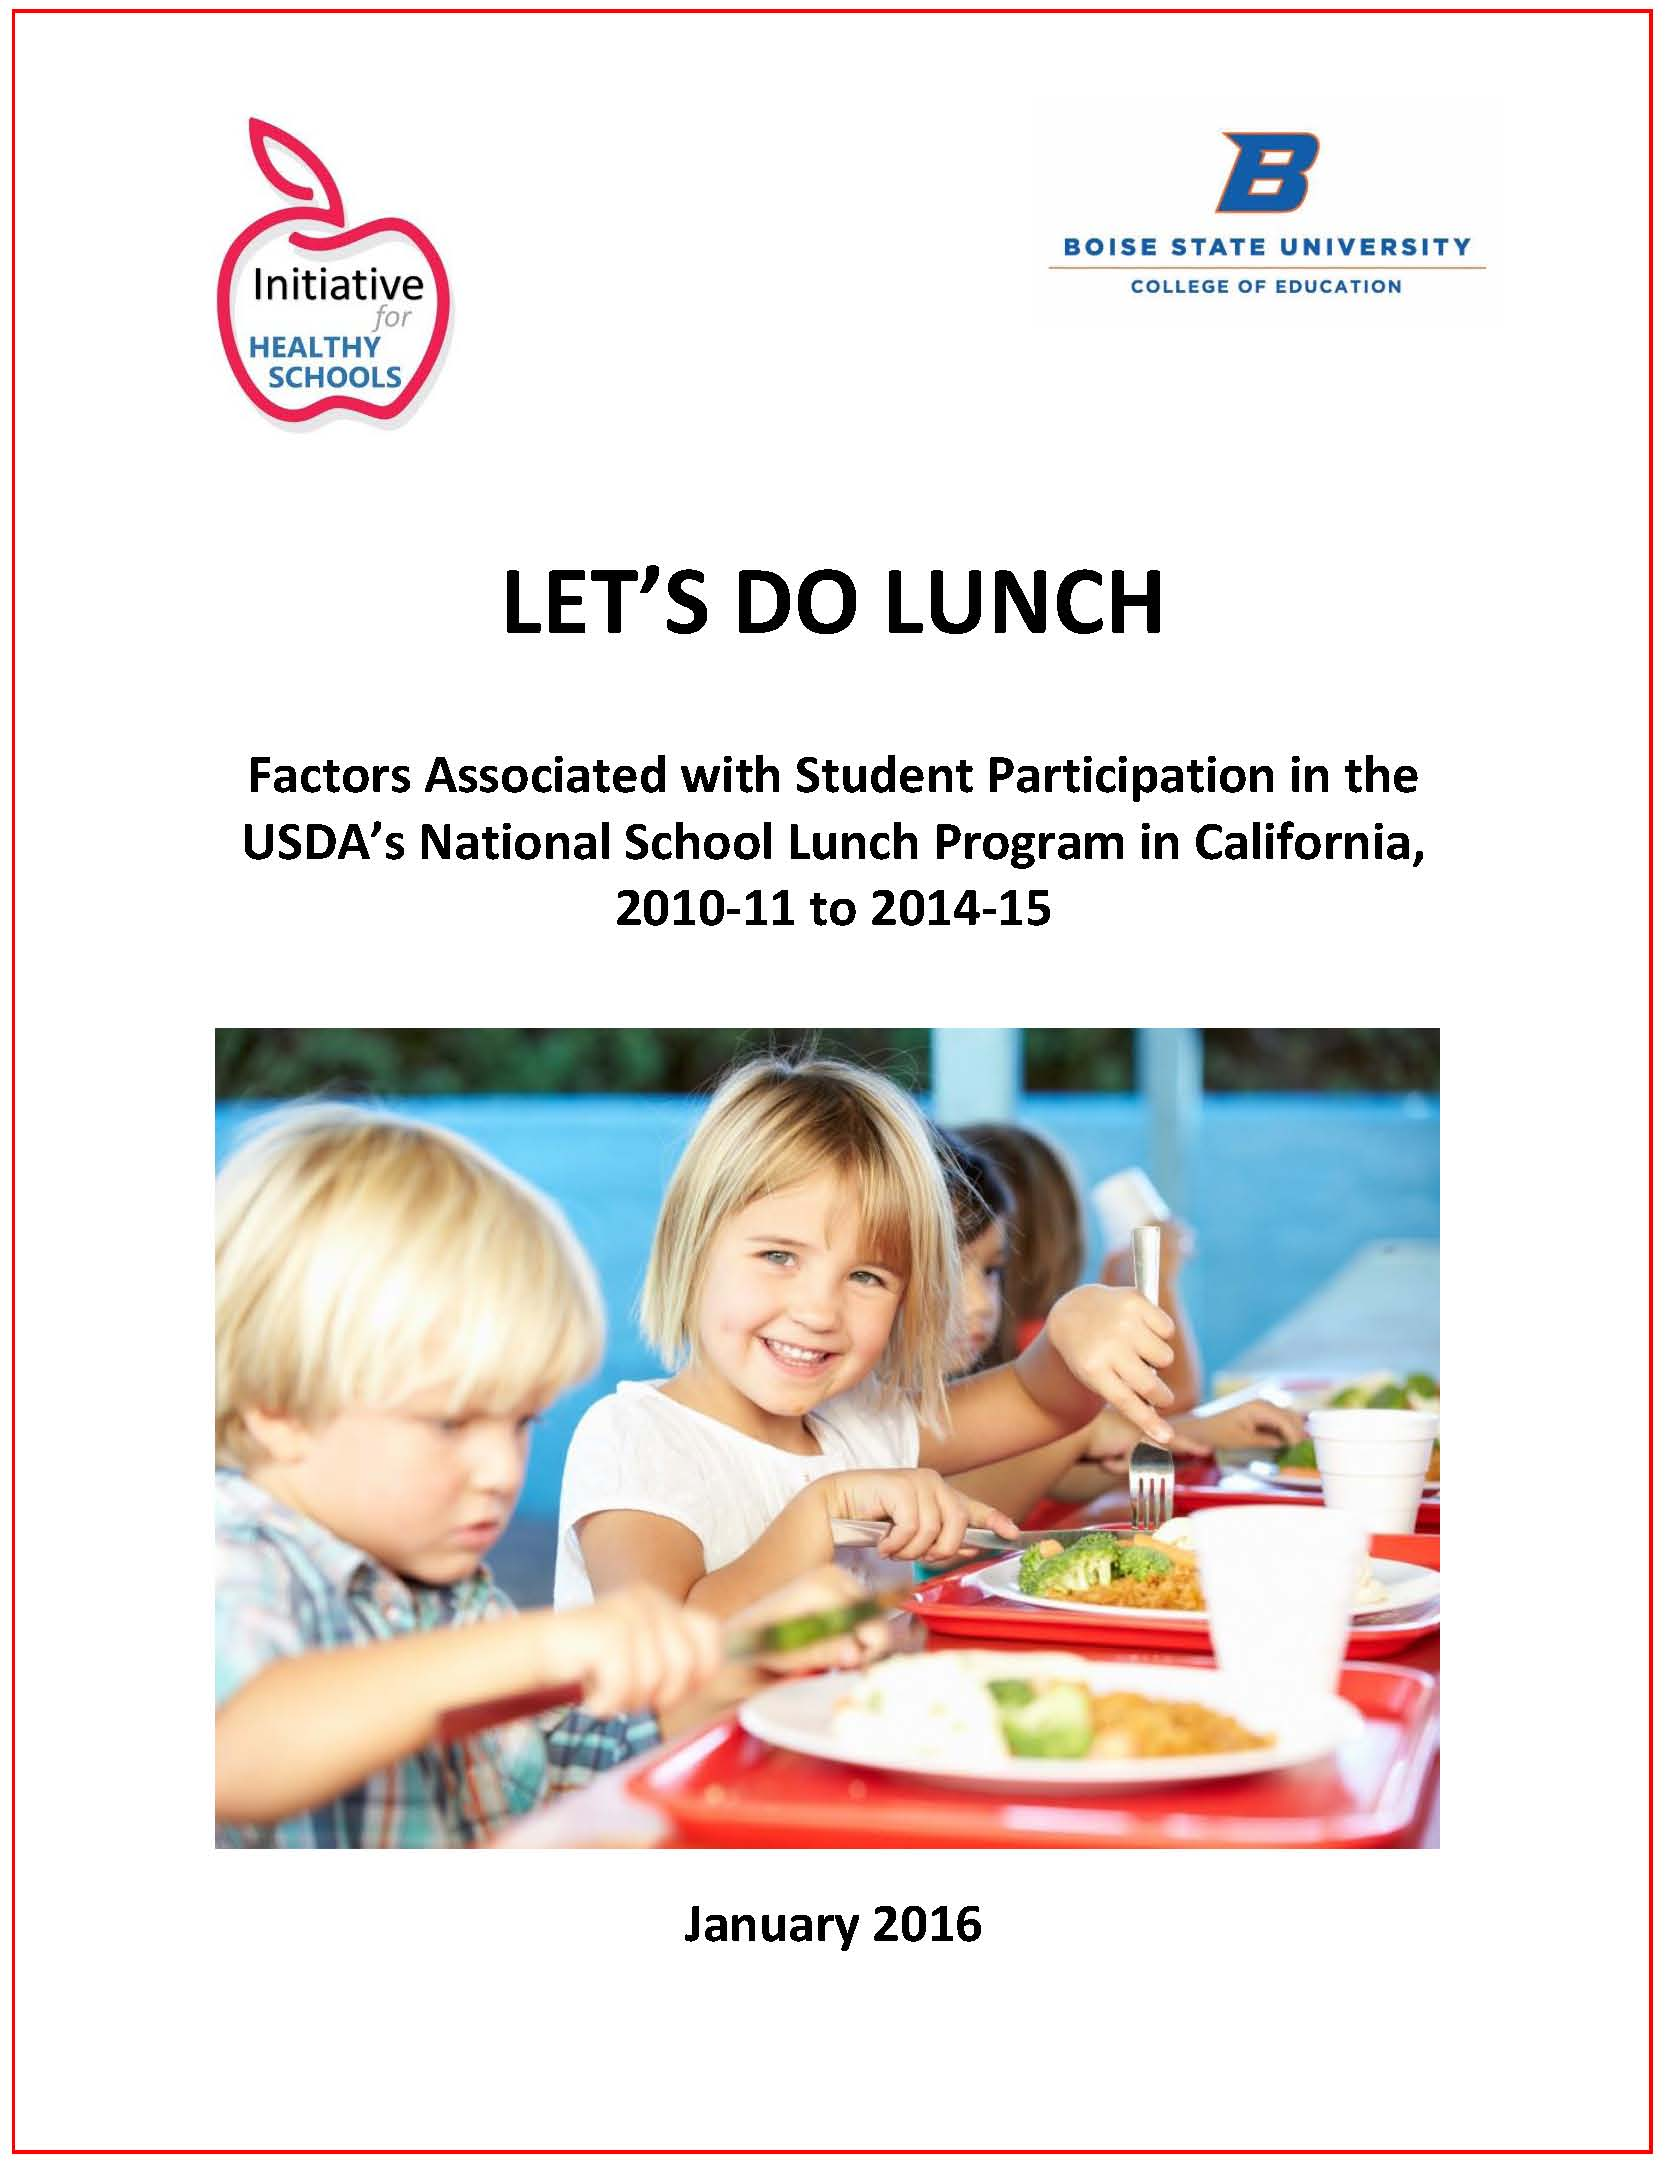 let's do lunch flyer PDF